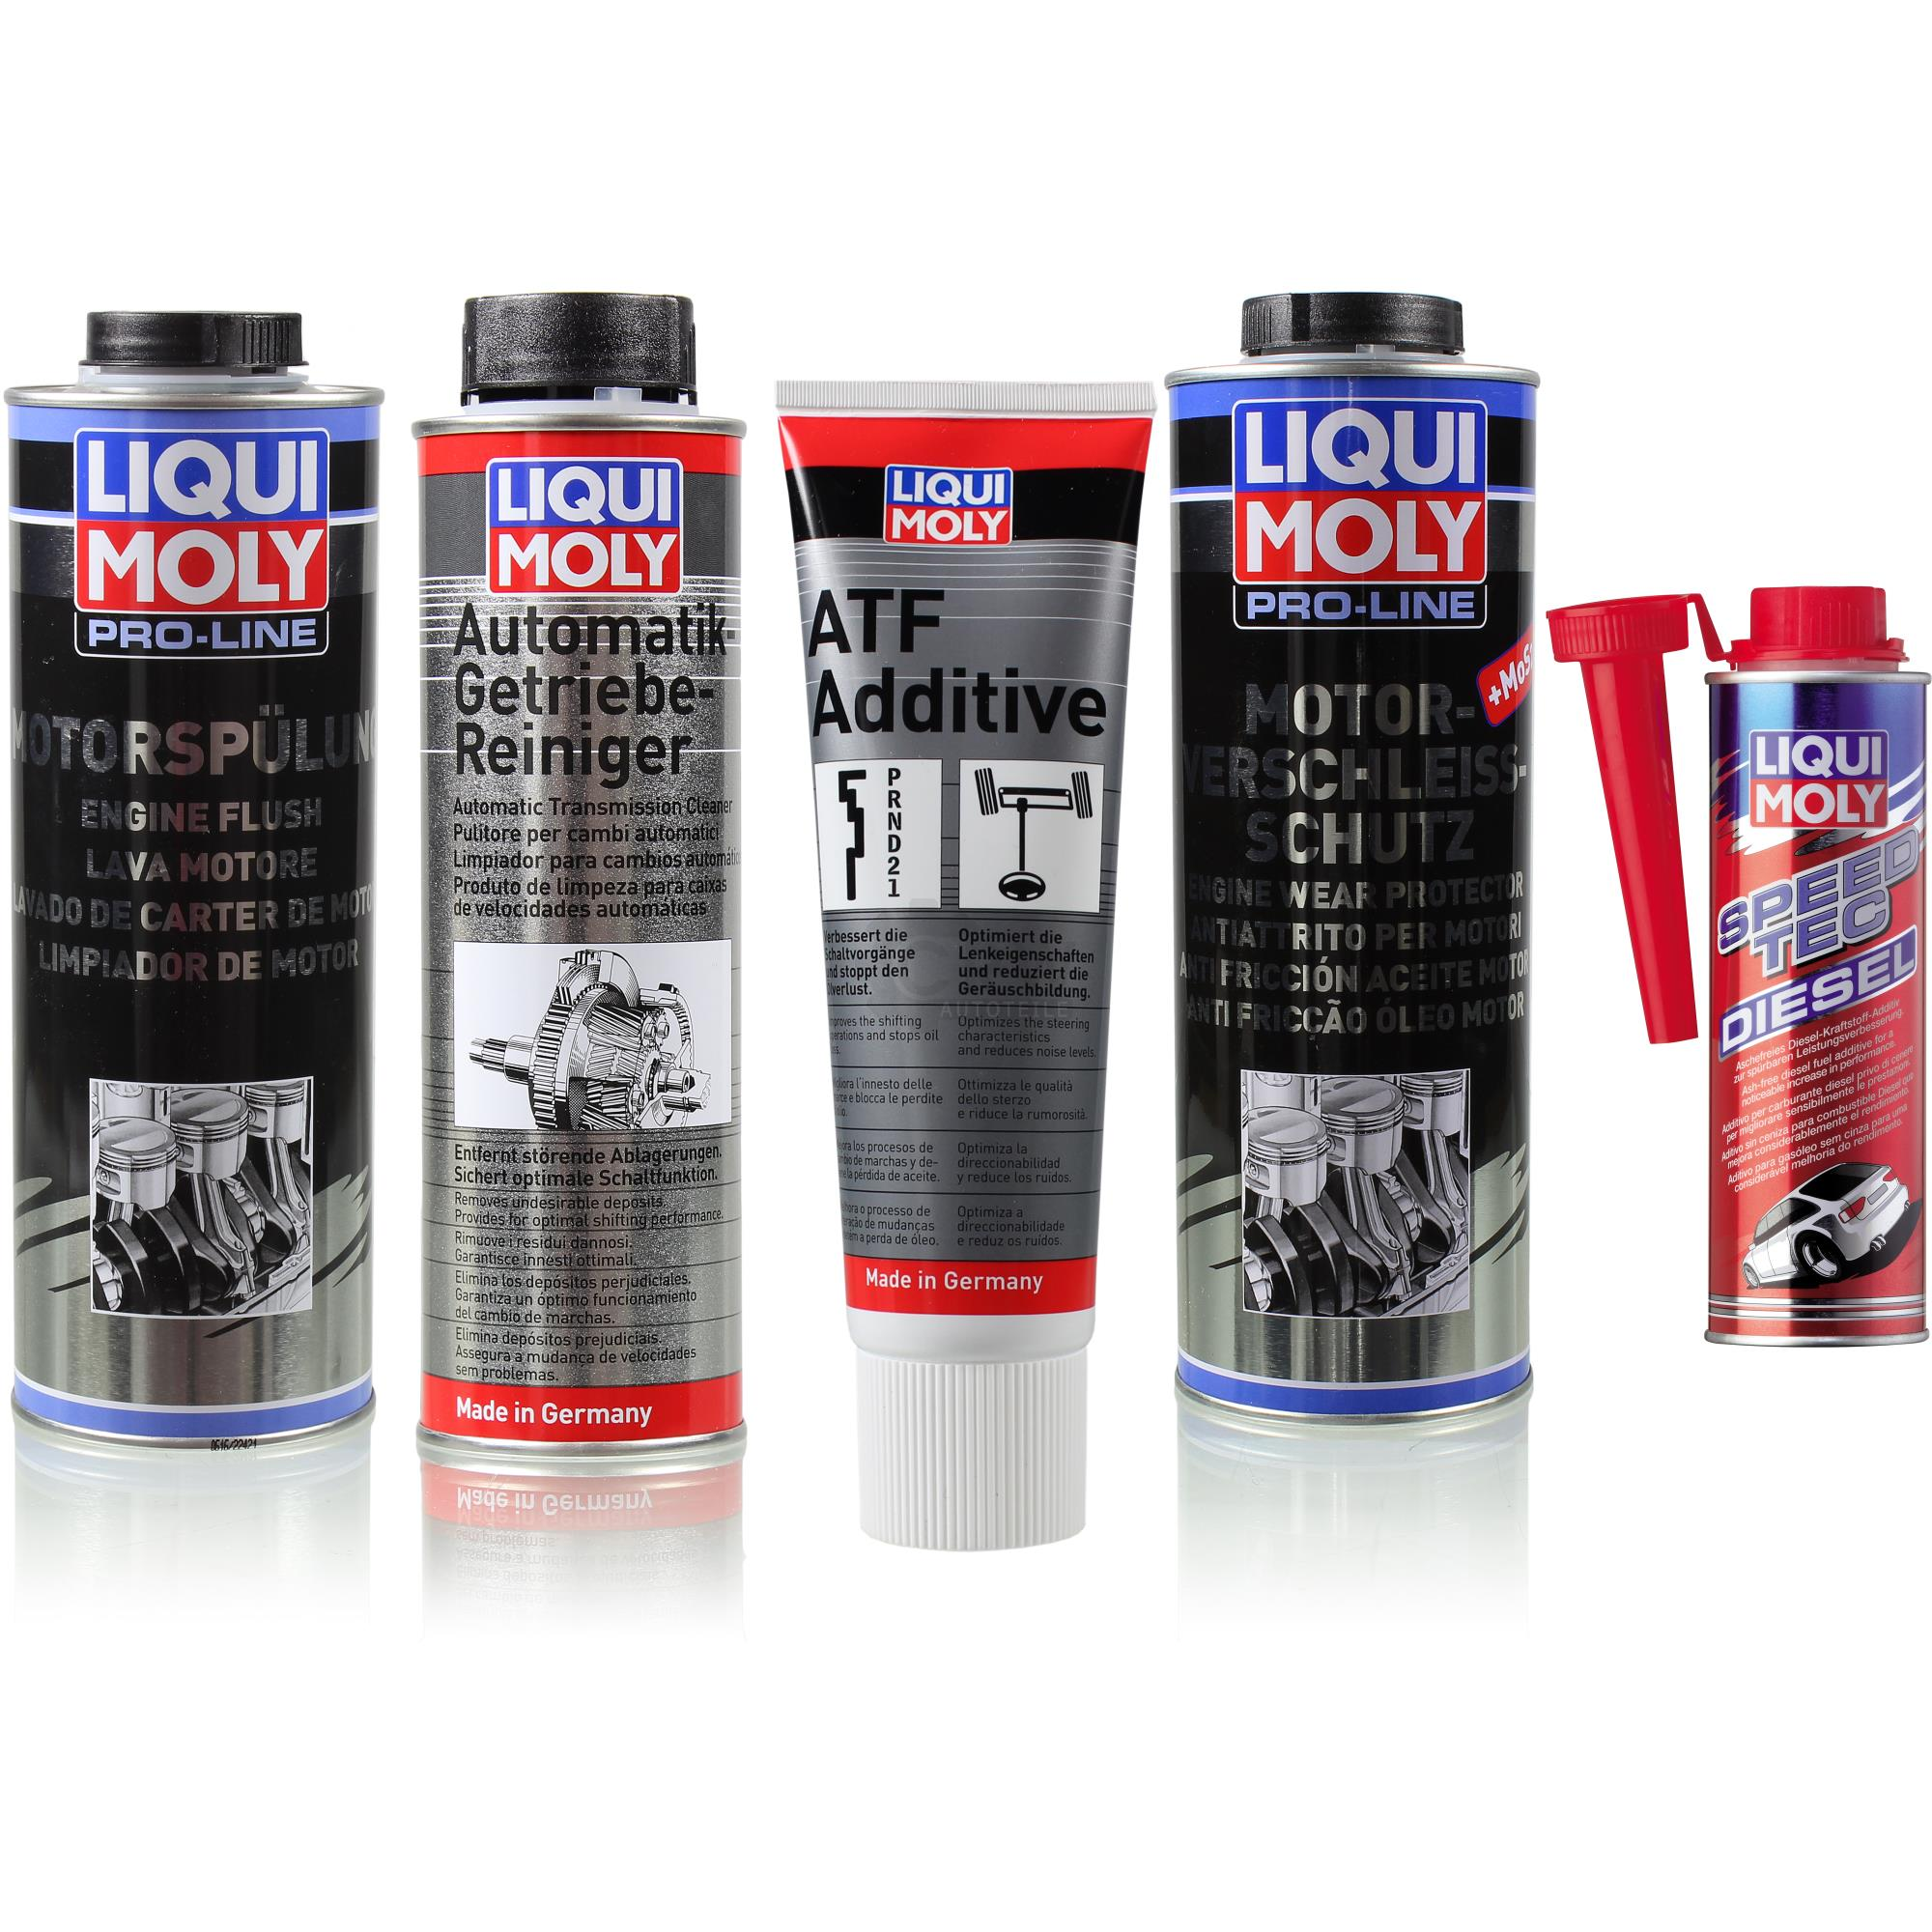 liqui moly pro line motor kraftstoff und aut getriebe. Black Bedroom Furniture Sets. Home Design Ideas